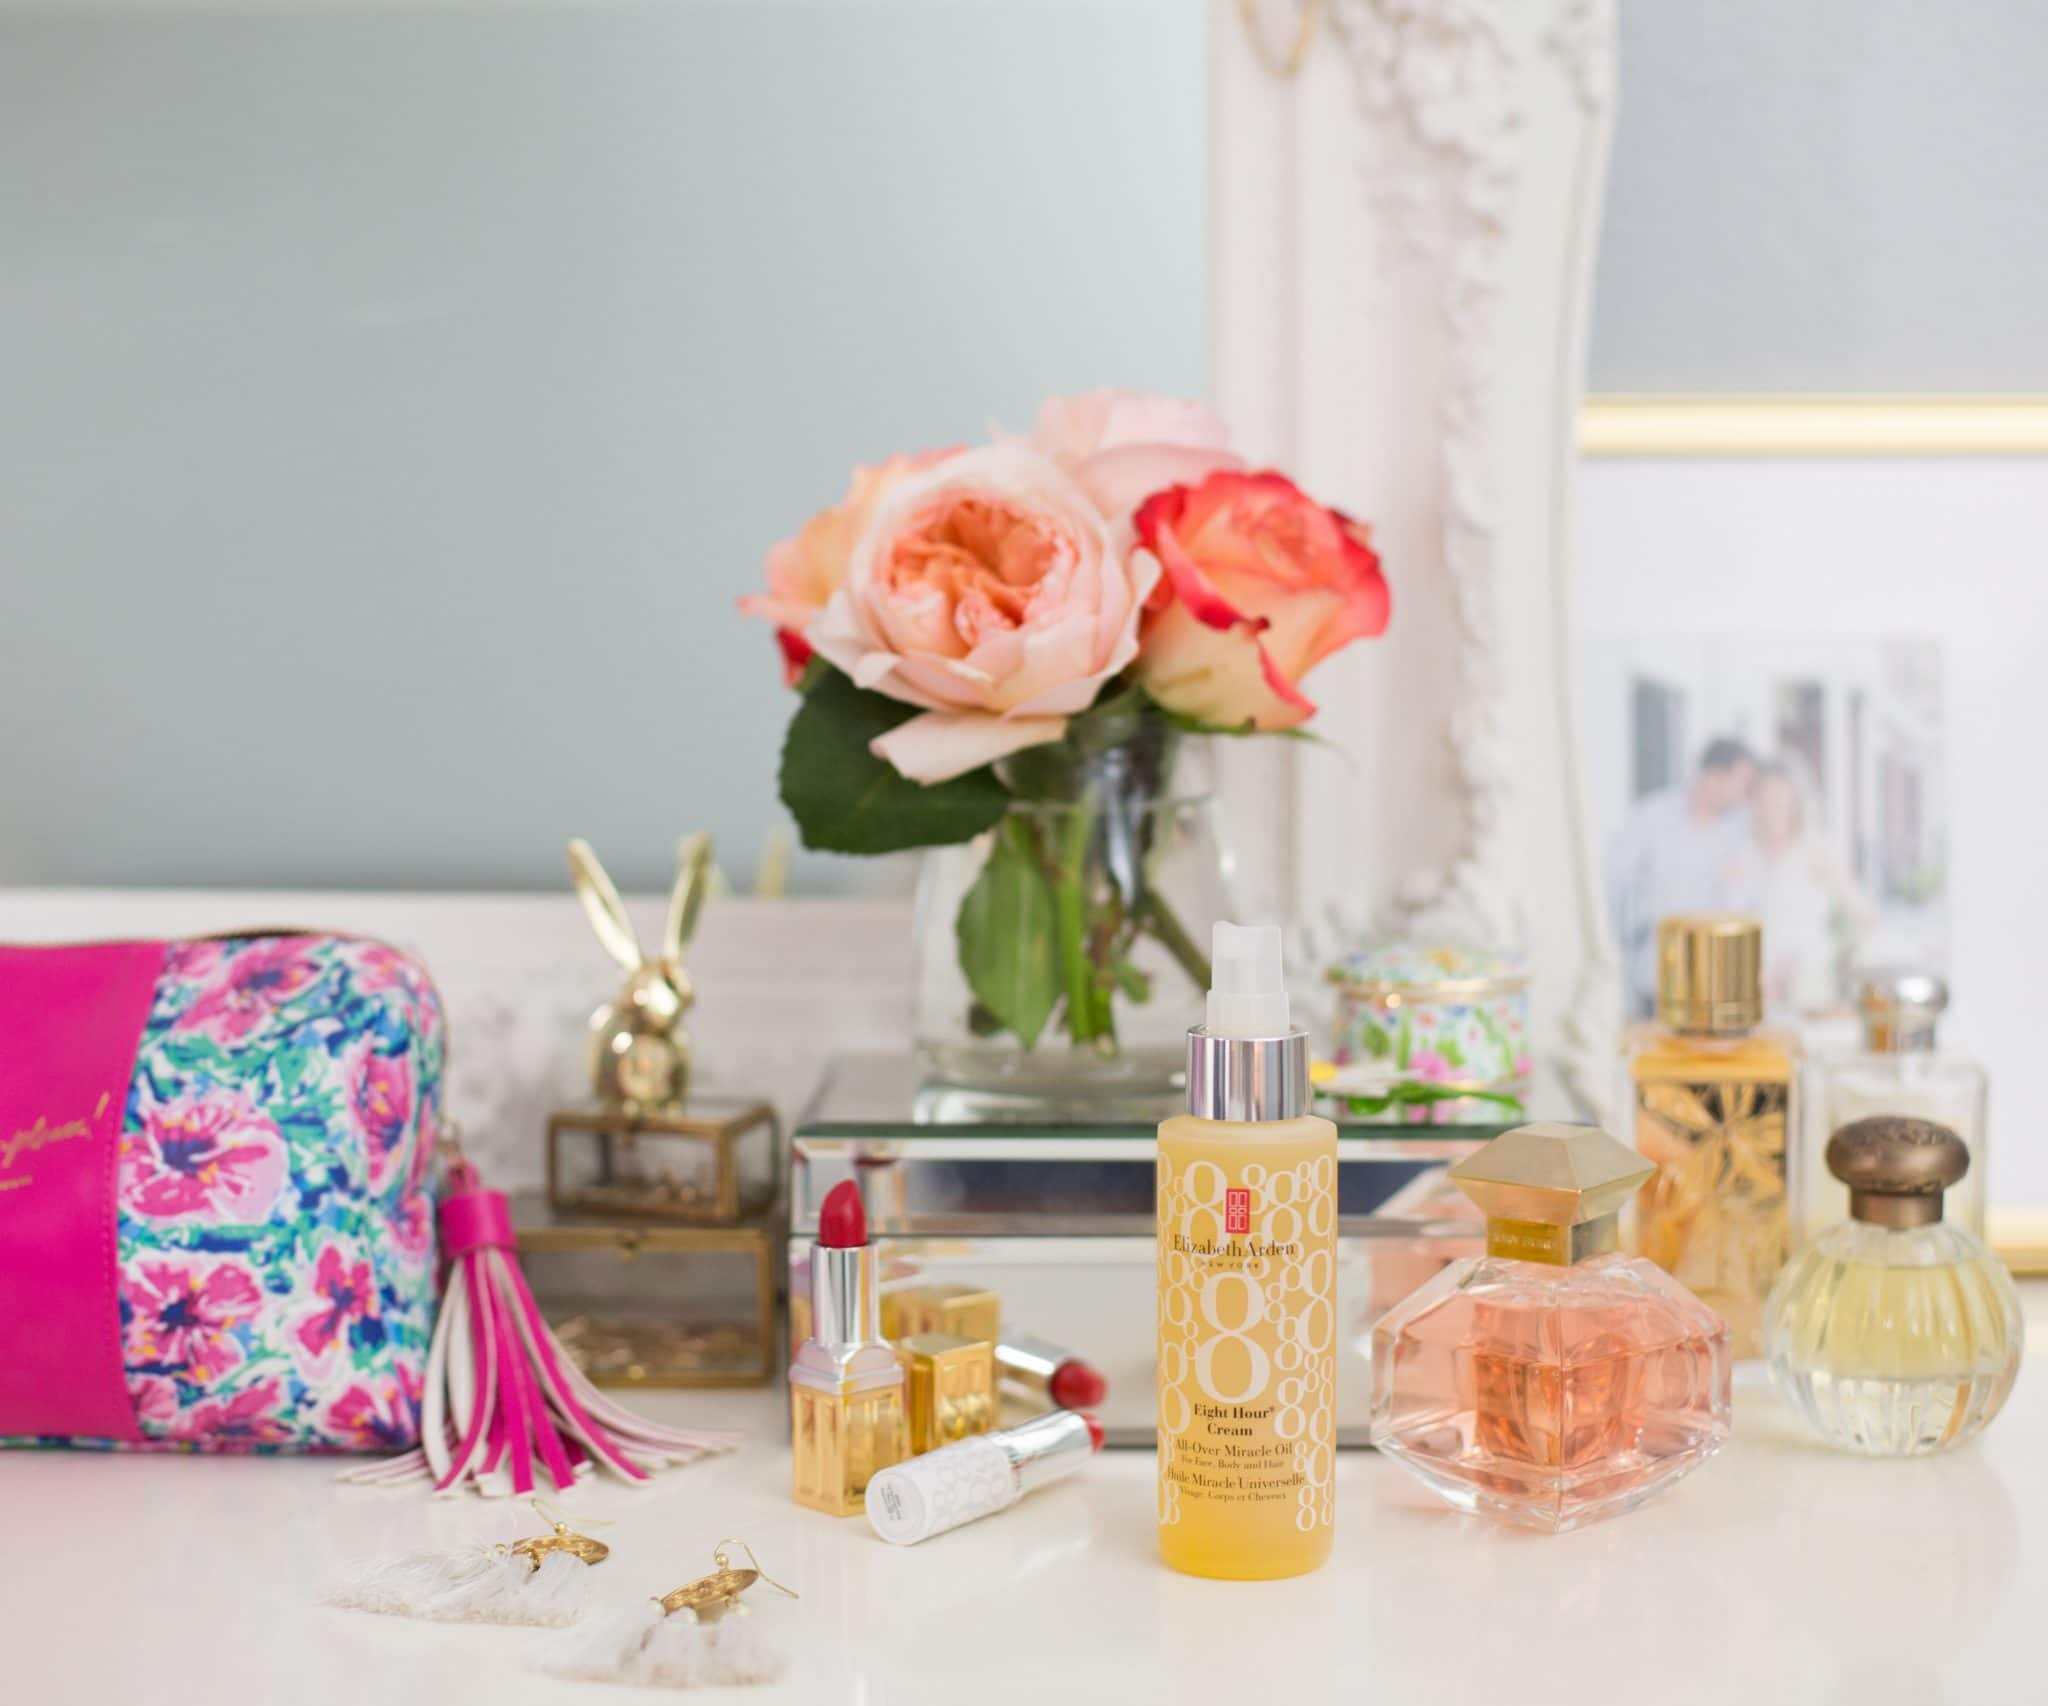 Blogger Ashley Brooke shares how she stays hydrated with Elizabeth Arden's Eight Hour Collection. | www.ashleybrookedesigns.com